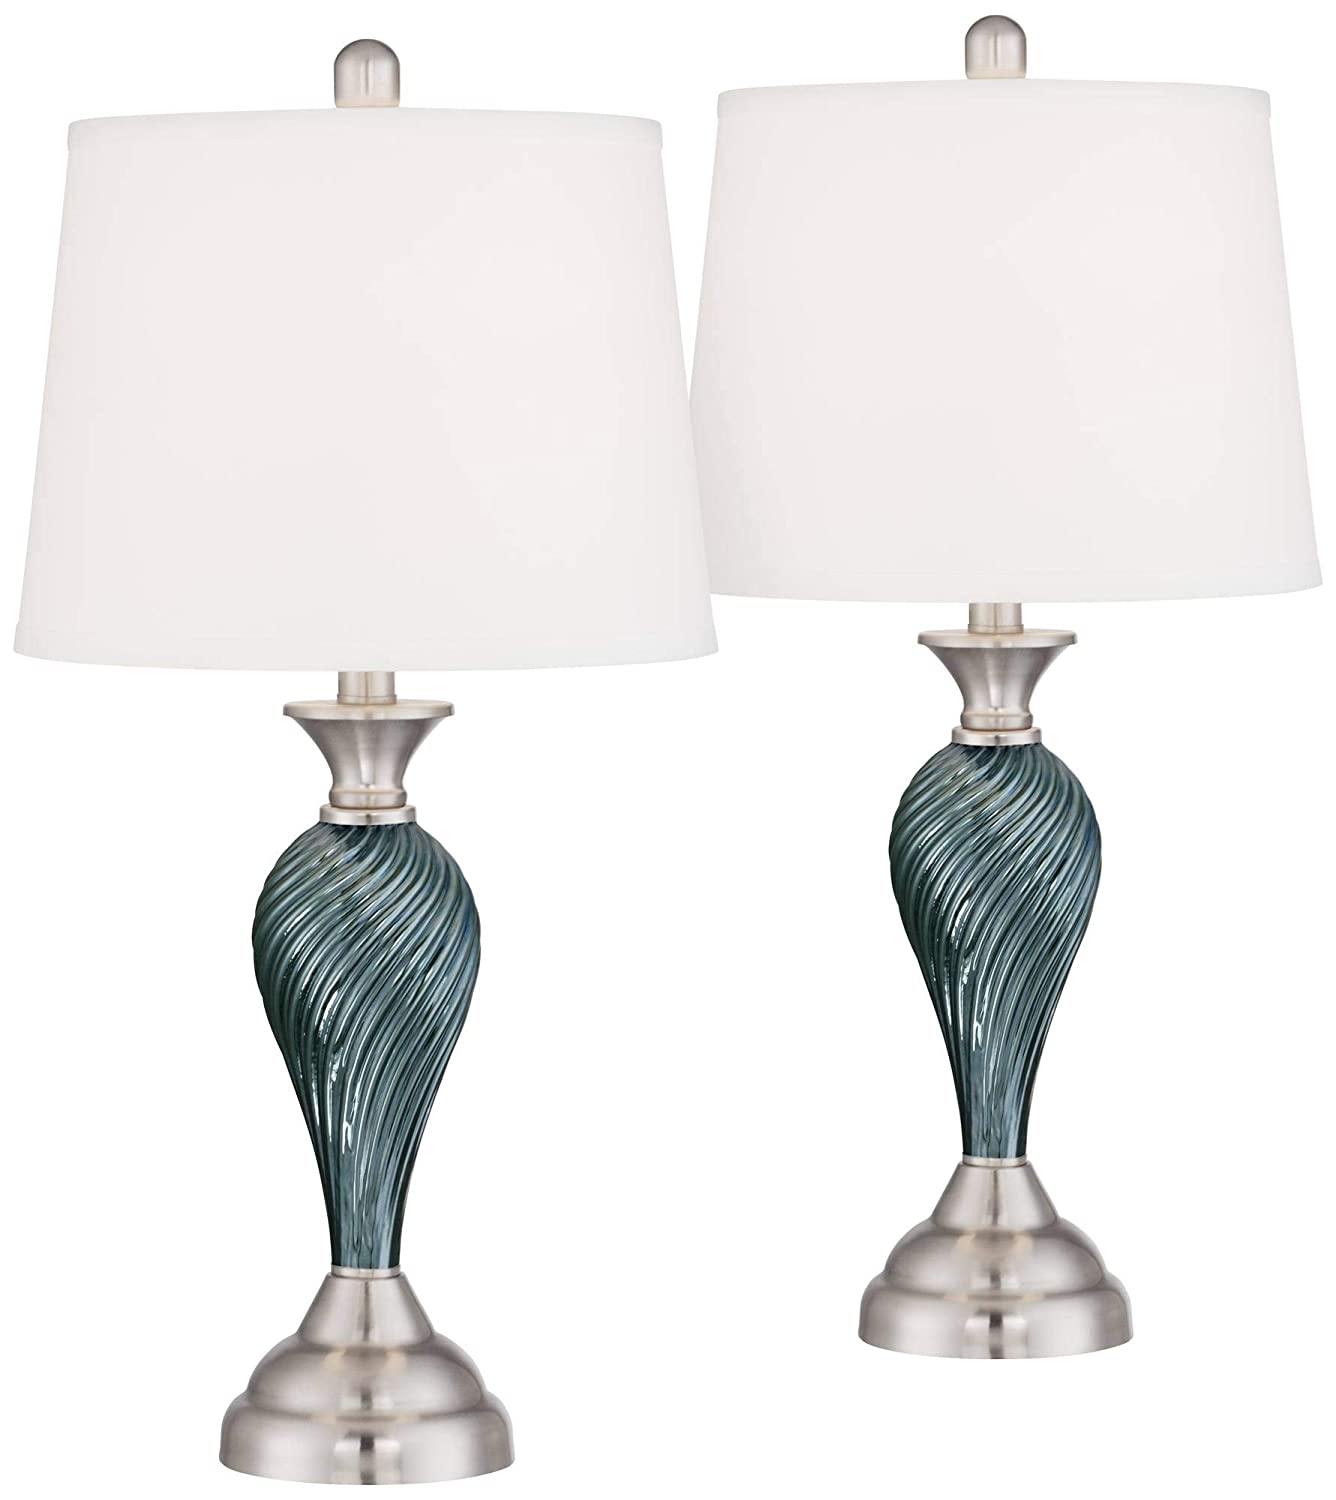 Arden modern table lamps set of 2 green blue glass twist column steel base empire shade for living room family bedroom amazon com